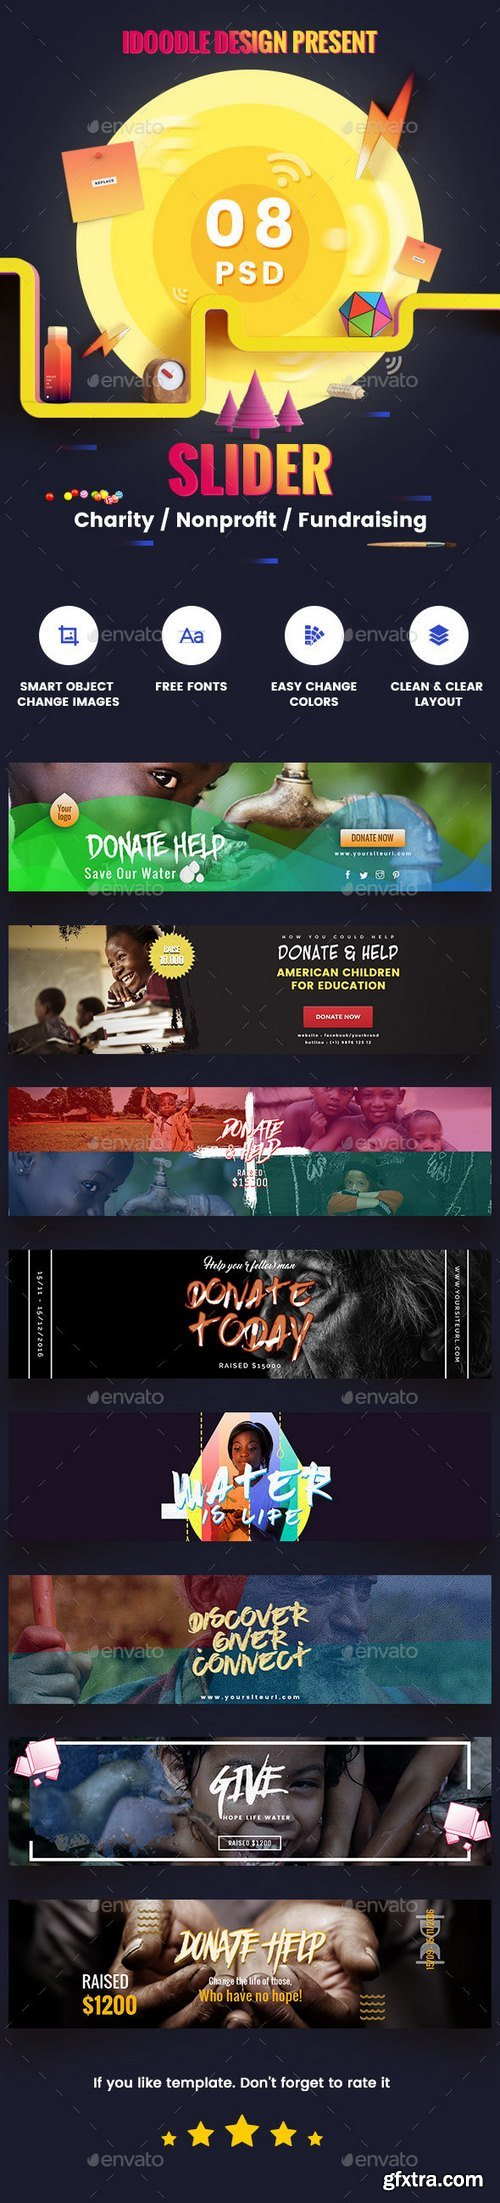 Graphicriver - Charity / Nonprofit / Fundraising Sliders - 08 PSD 18895757